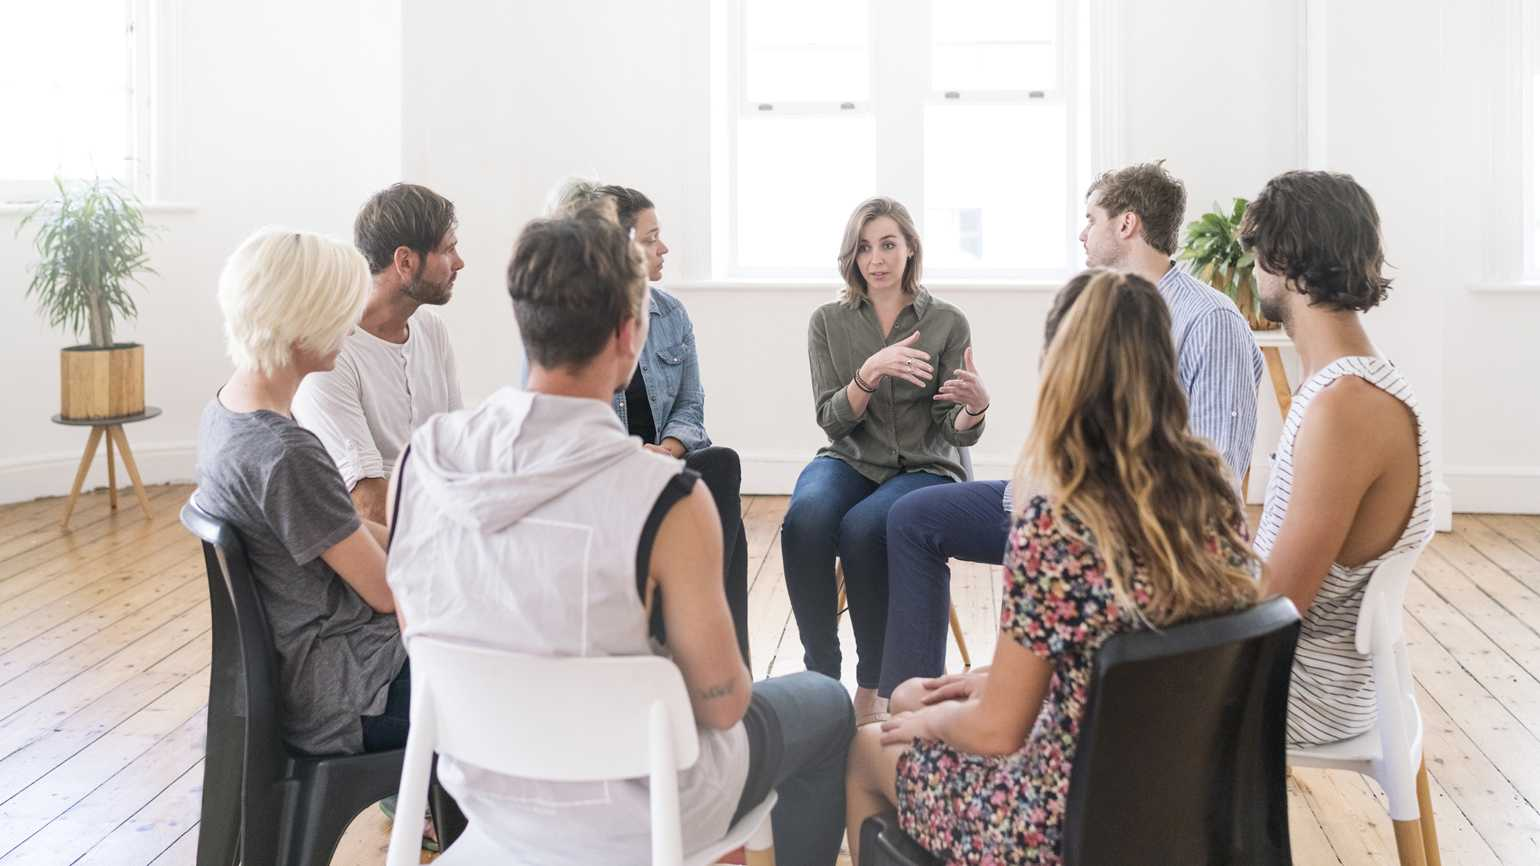 An active support group discussing their personal issues.